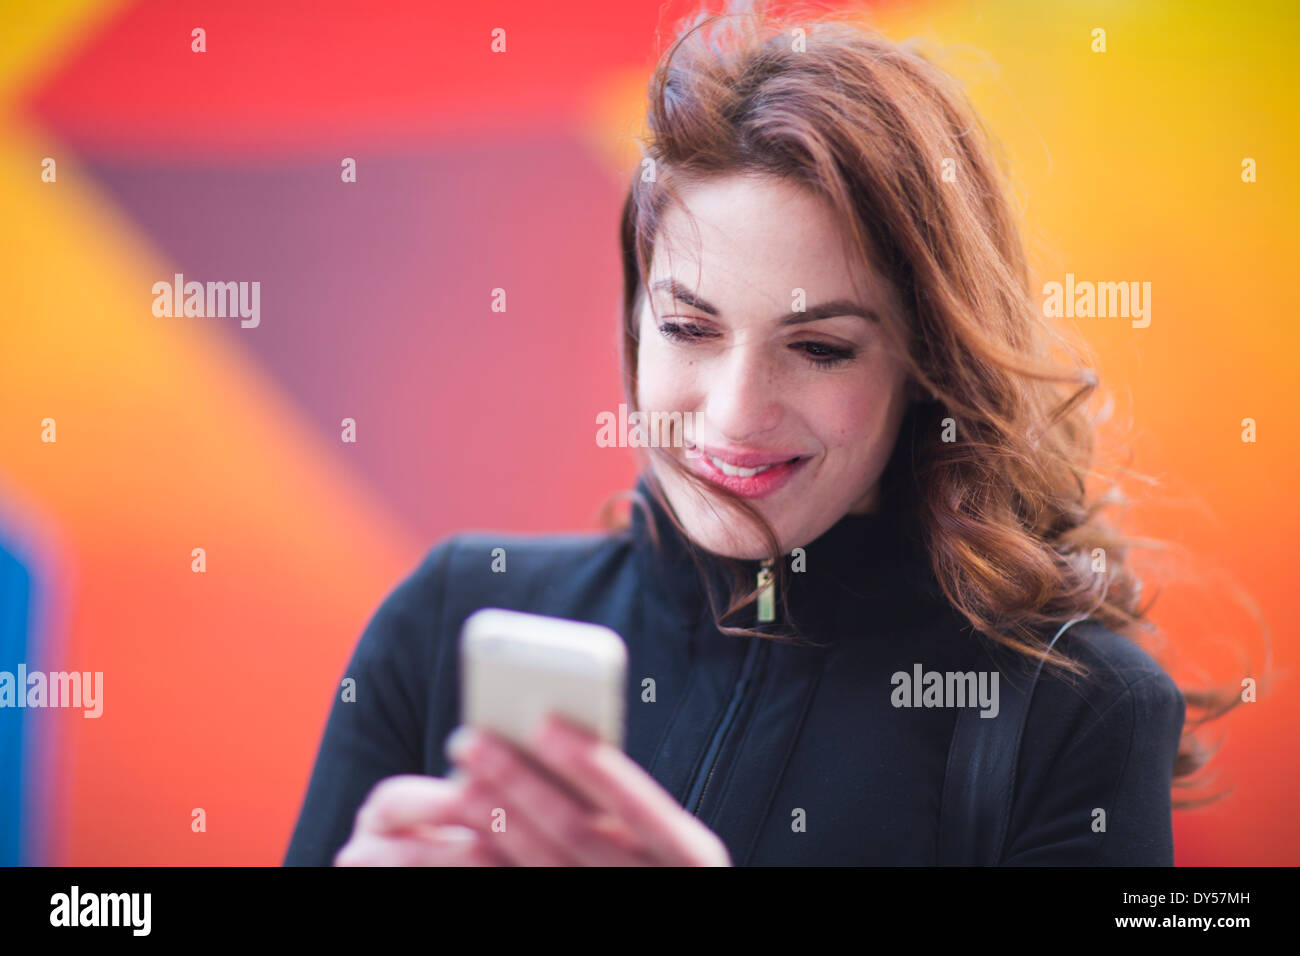 Young woman reading text messages on city street - Stock Image